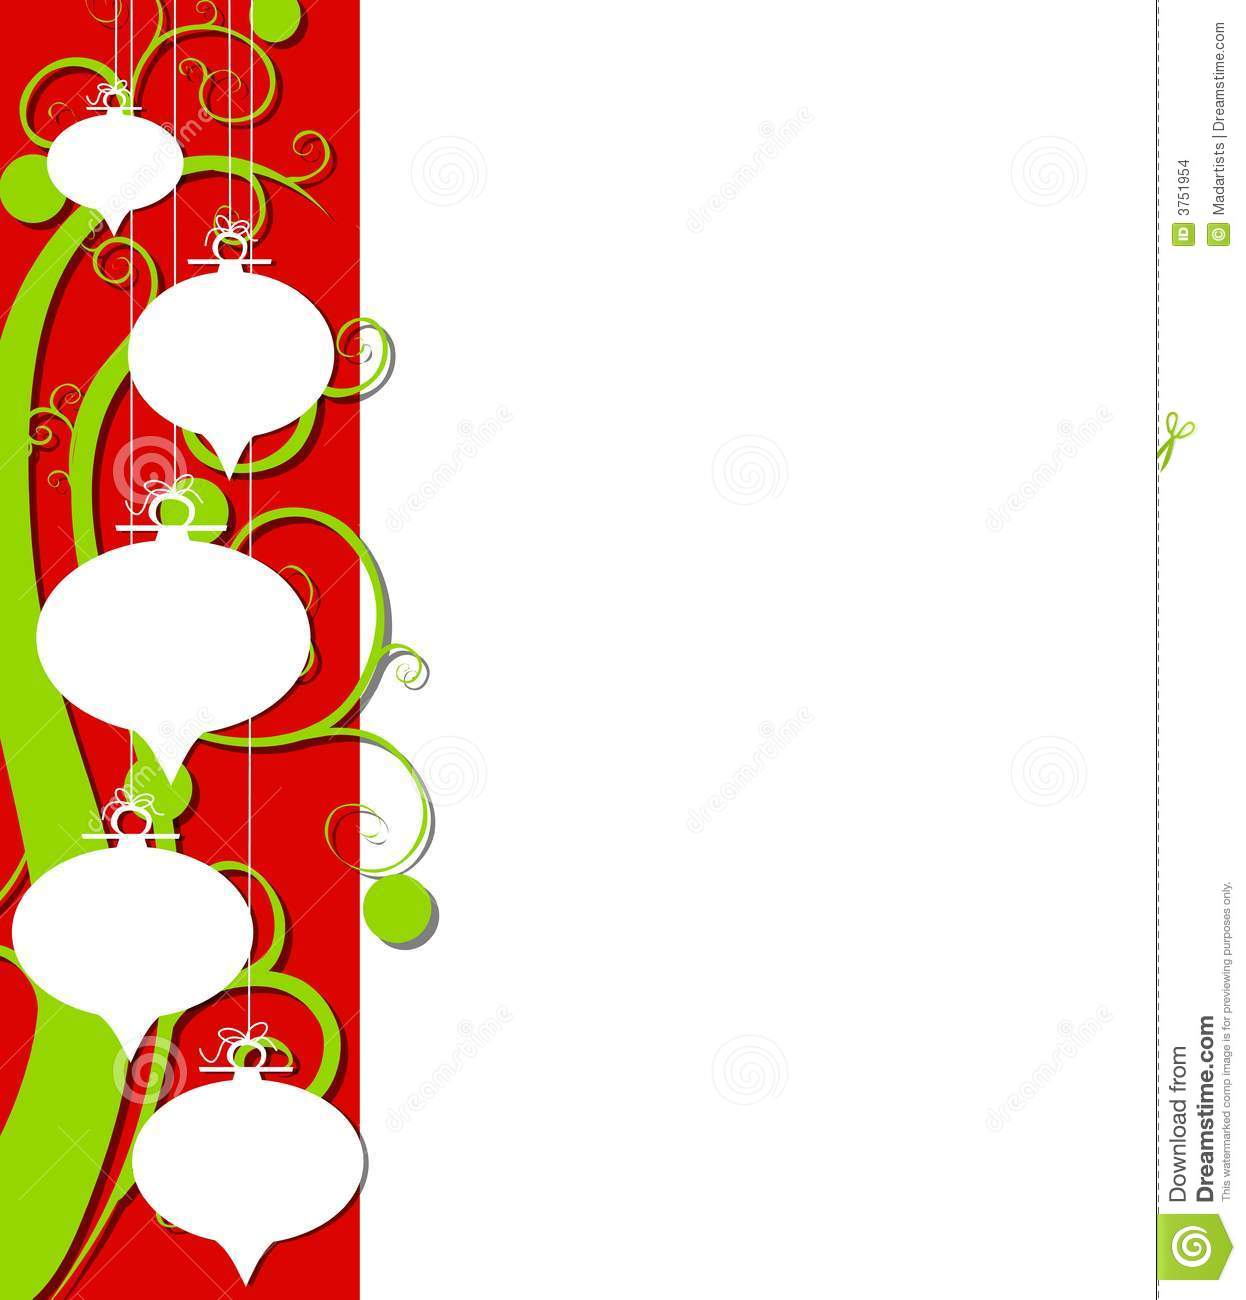 clip art royalty free library Clip art for word. Christmas borders free clipart